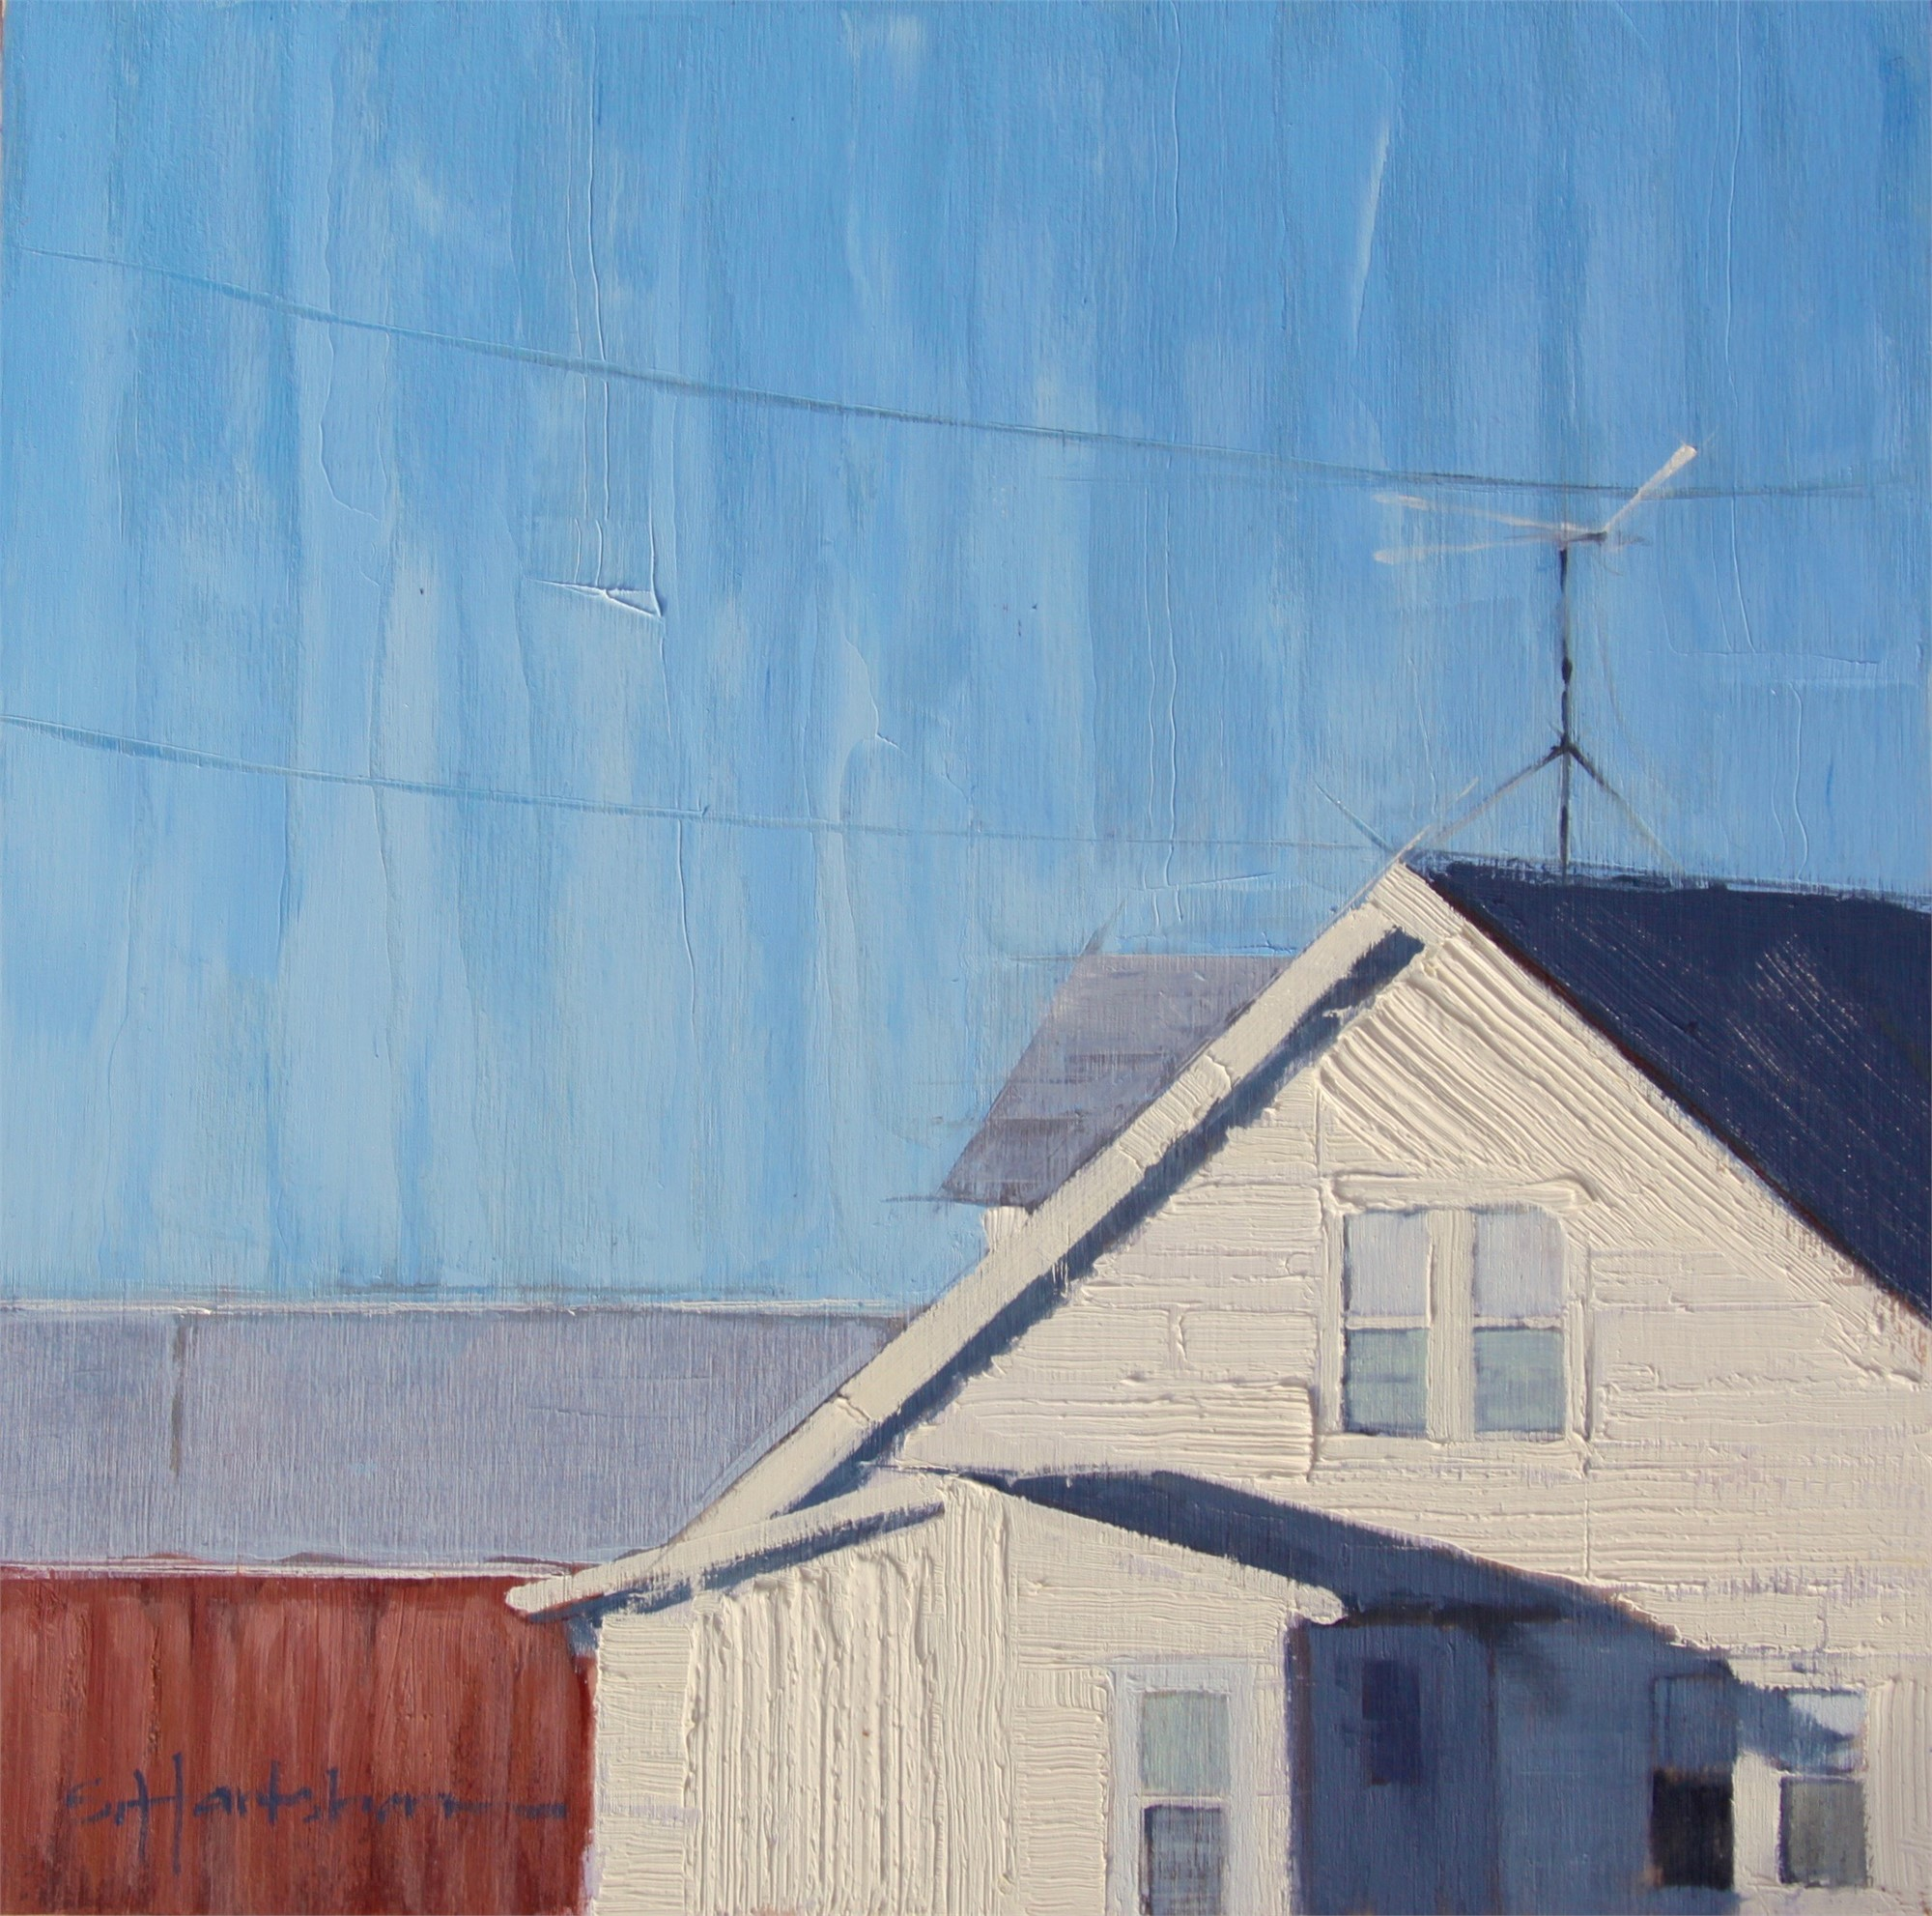 Rural Roofline by Stephanie Hartshorn